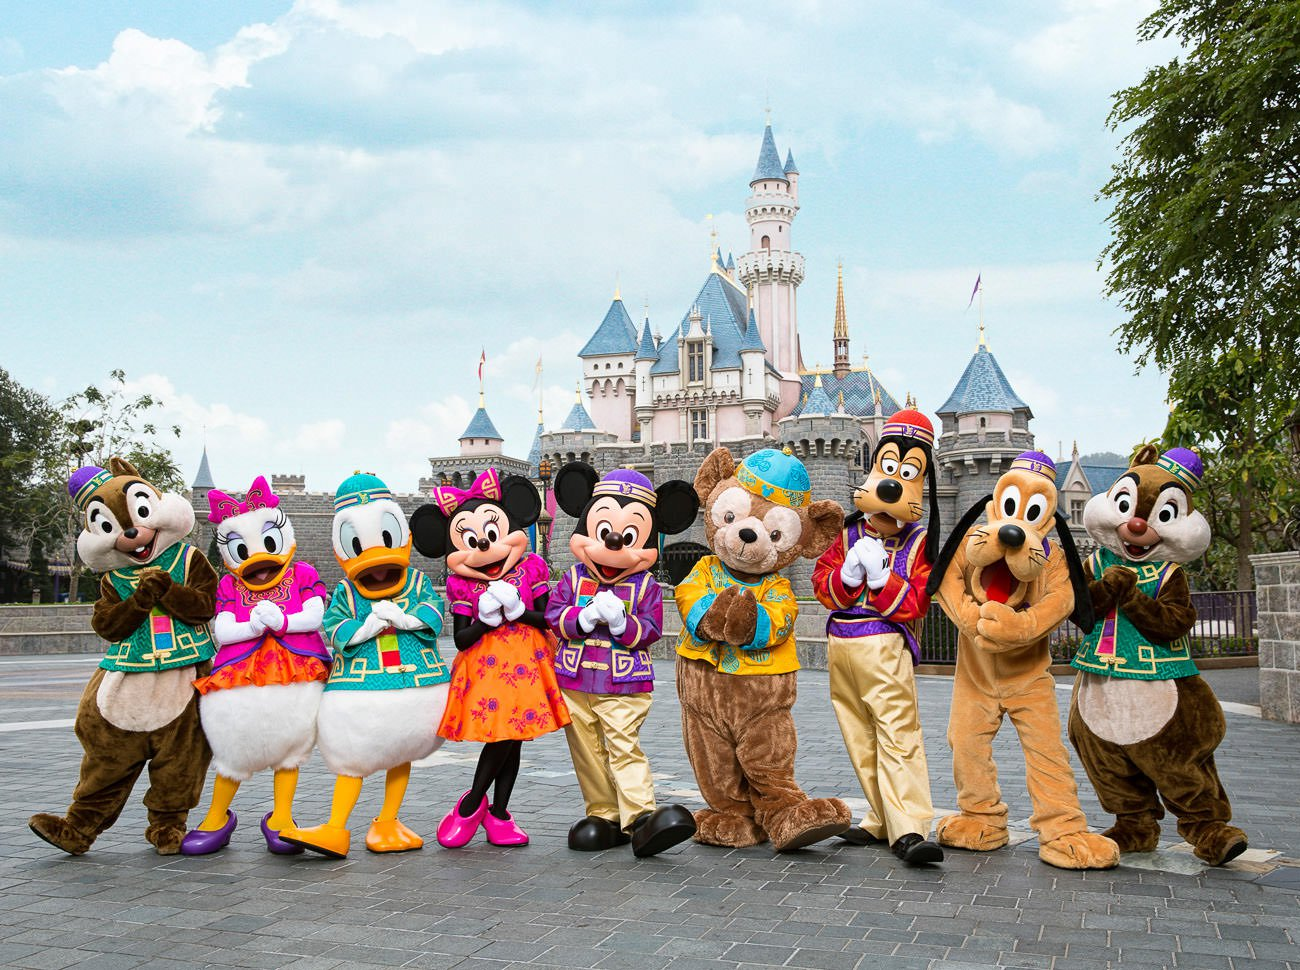 hong kong disneyland, the best tourist attraction in hong kong